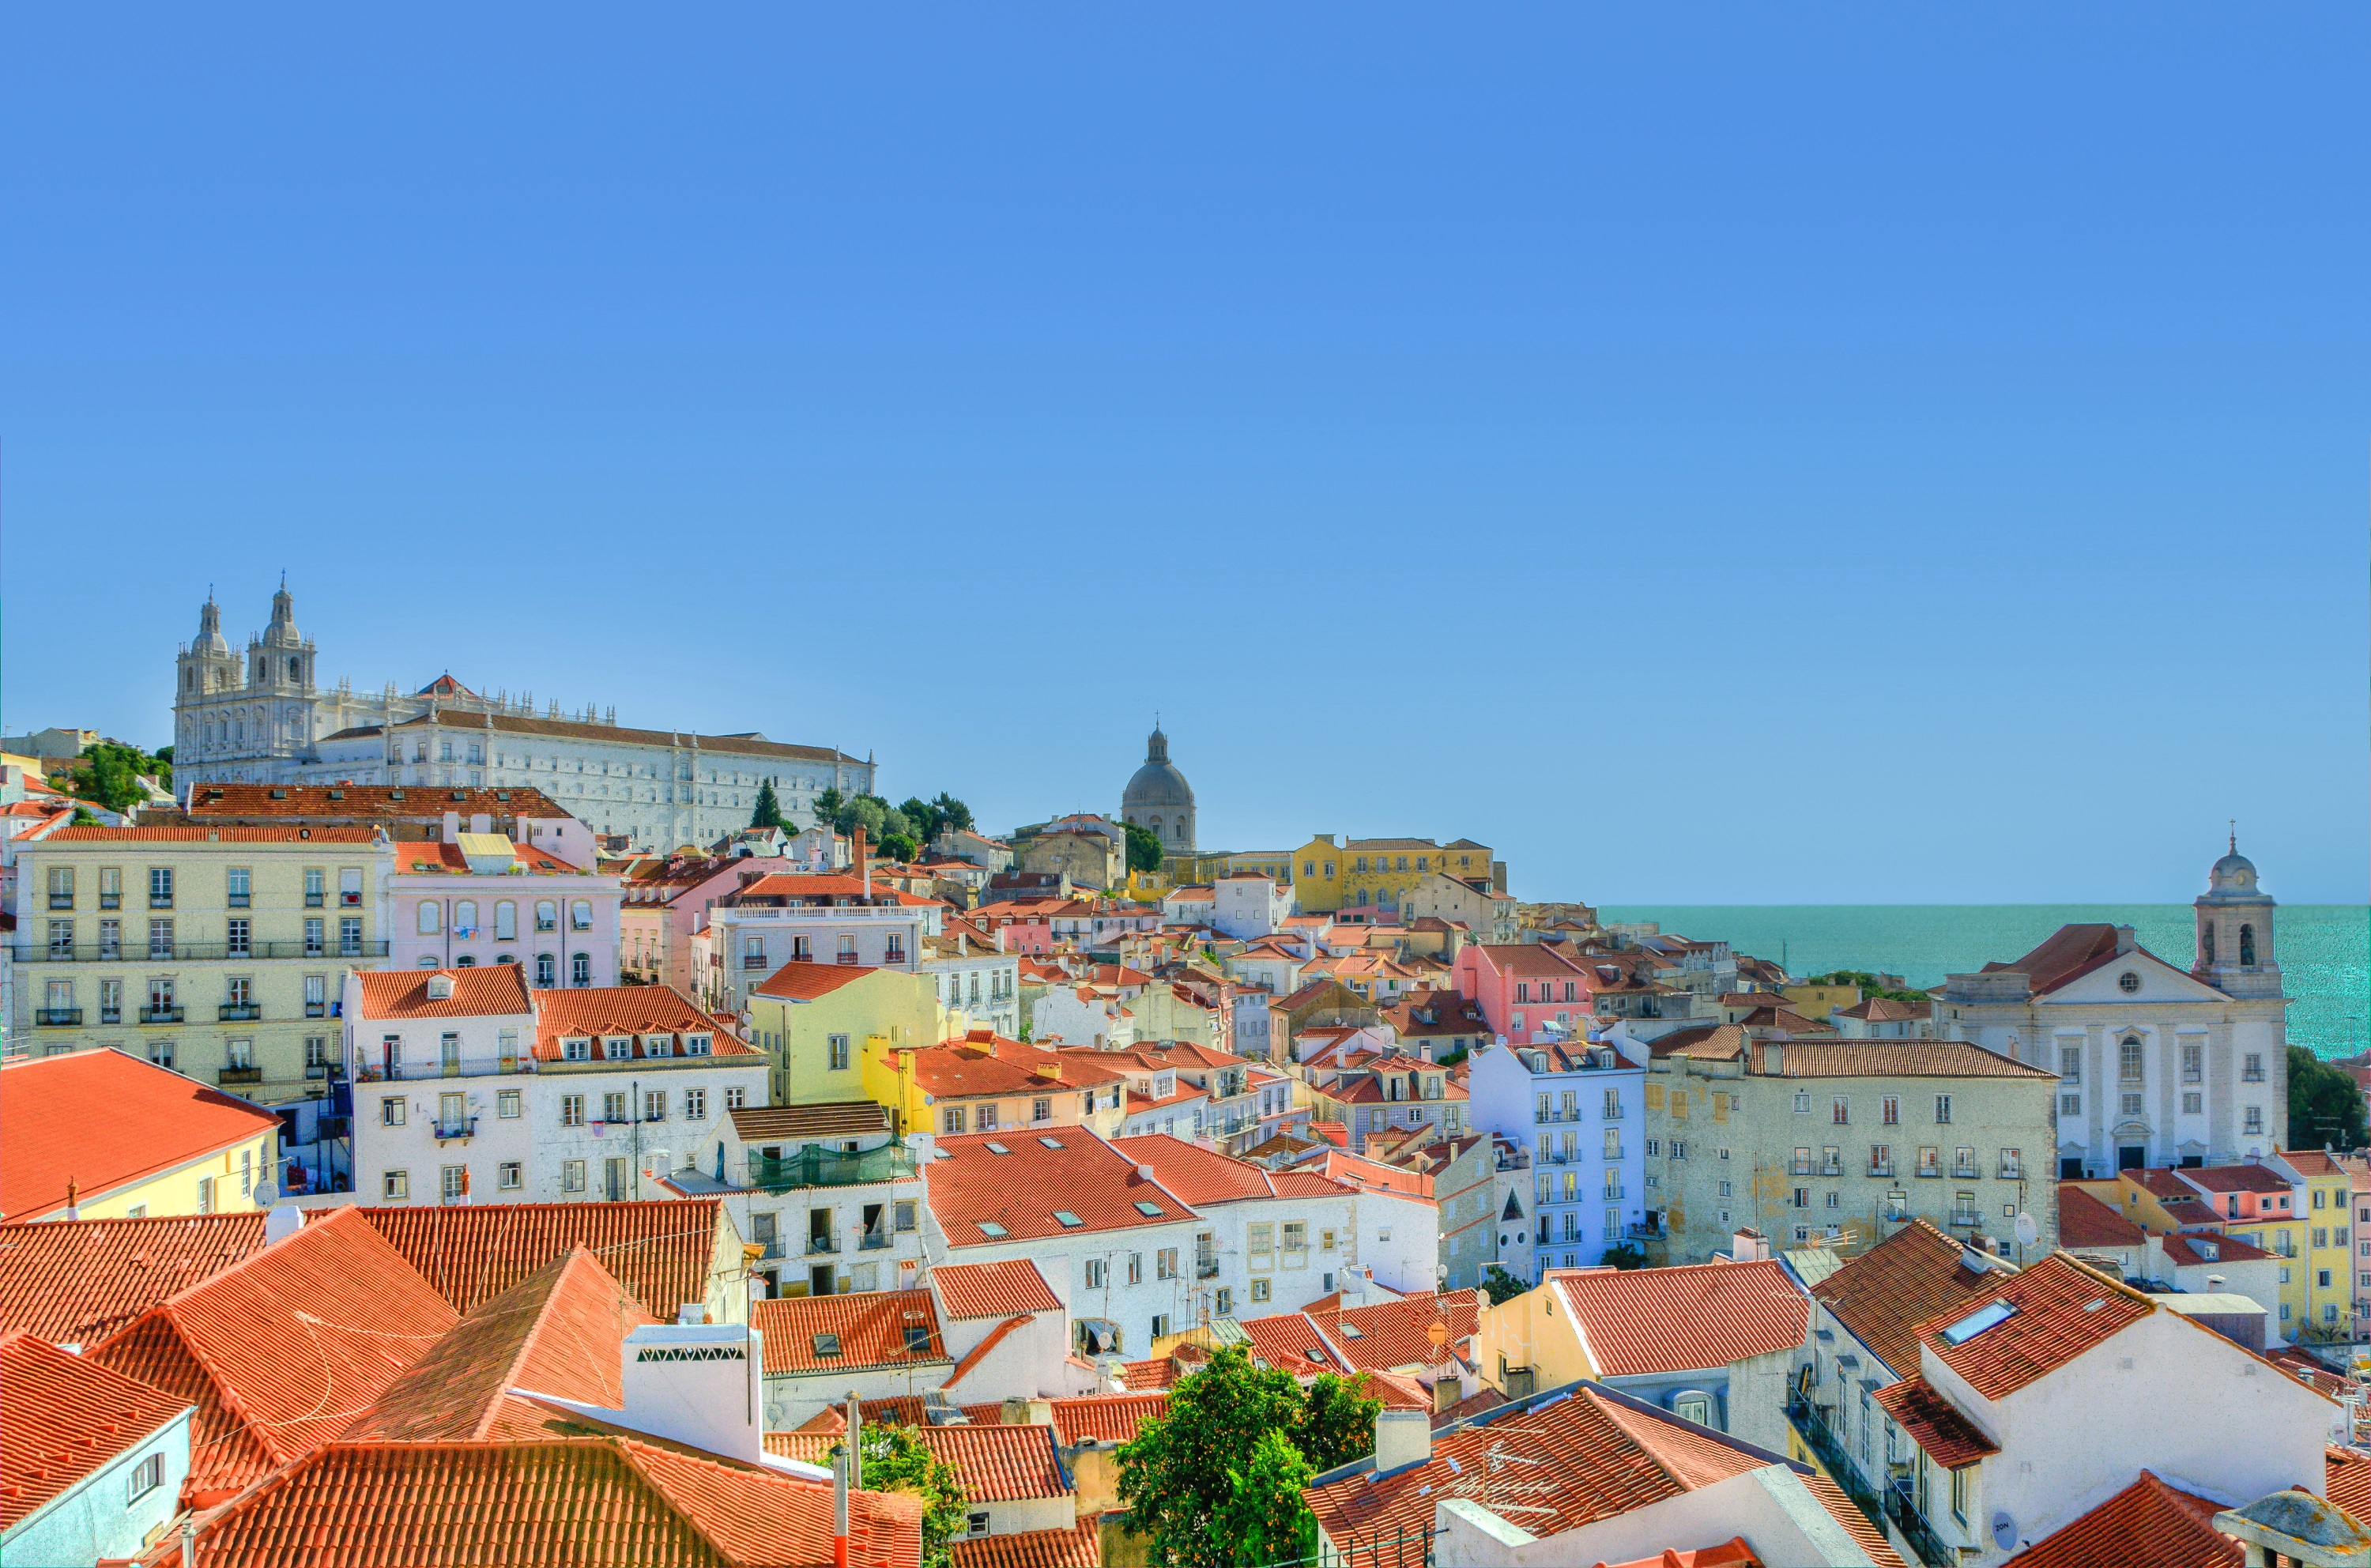 Lisbon - Alfama ranks as top European city for digital nomads